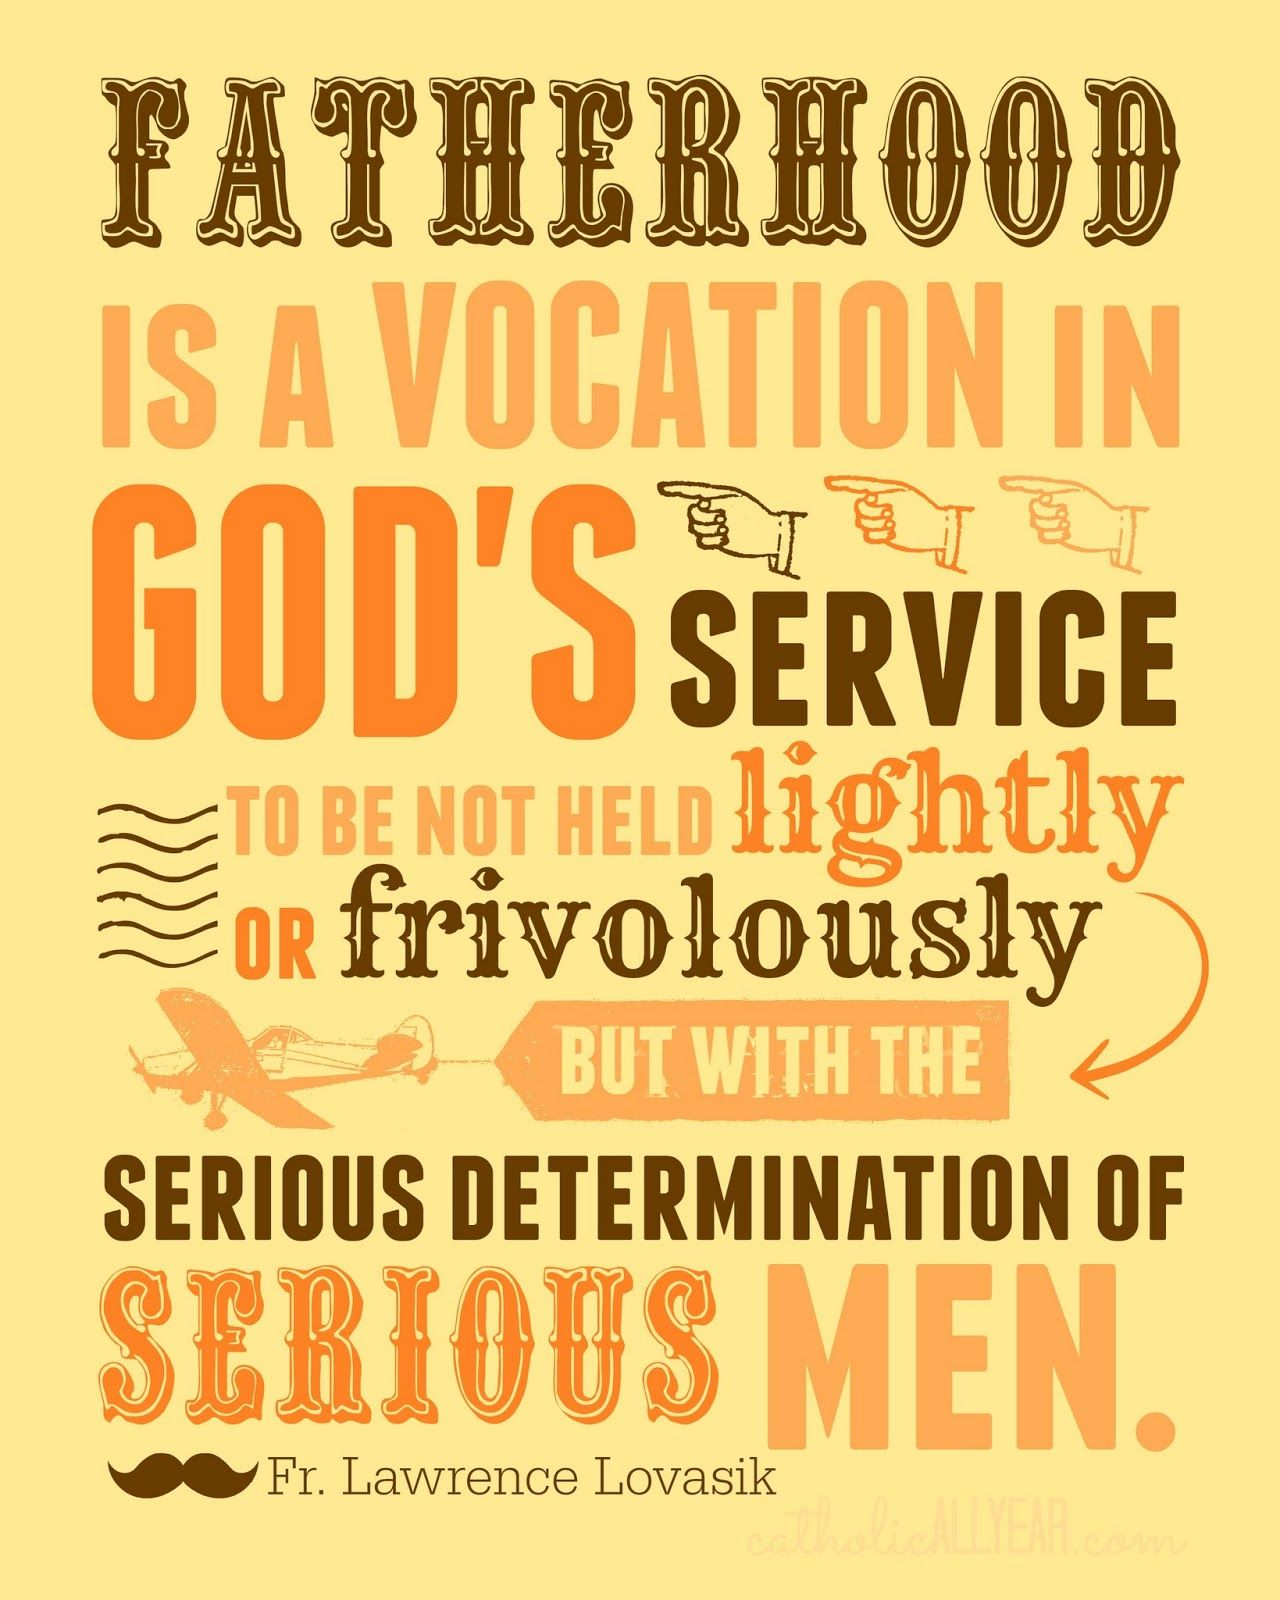 Catholic Quote Of The Day: Catholic All Year: Twelve Free Father's Day Printables Fr